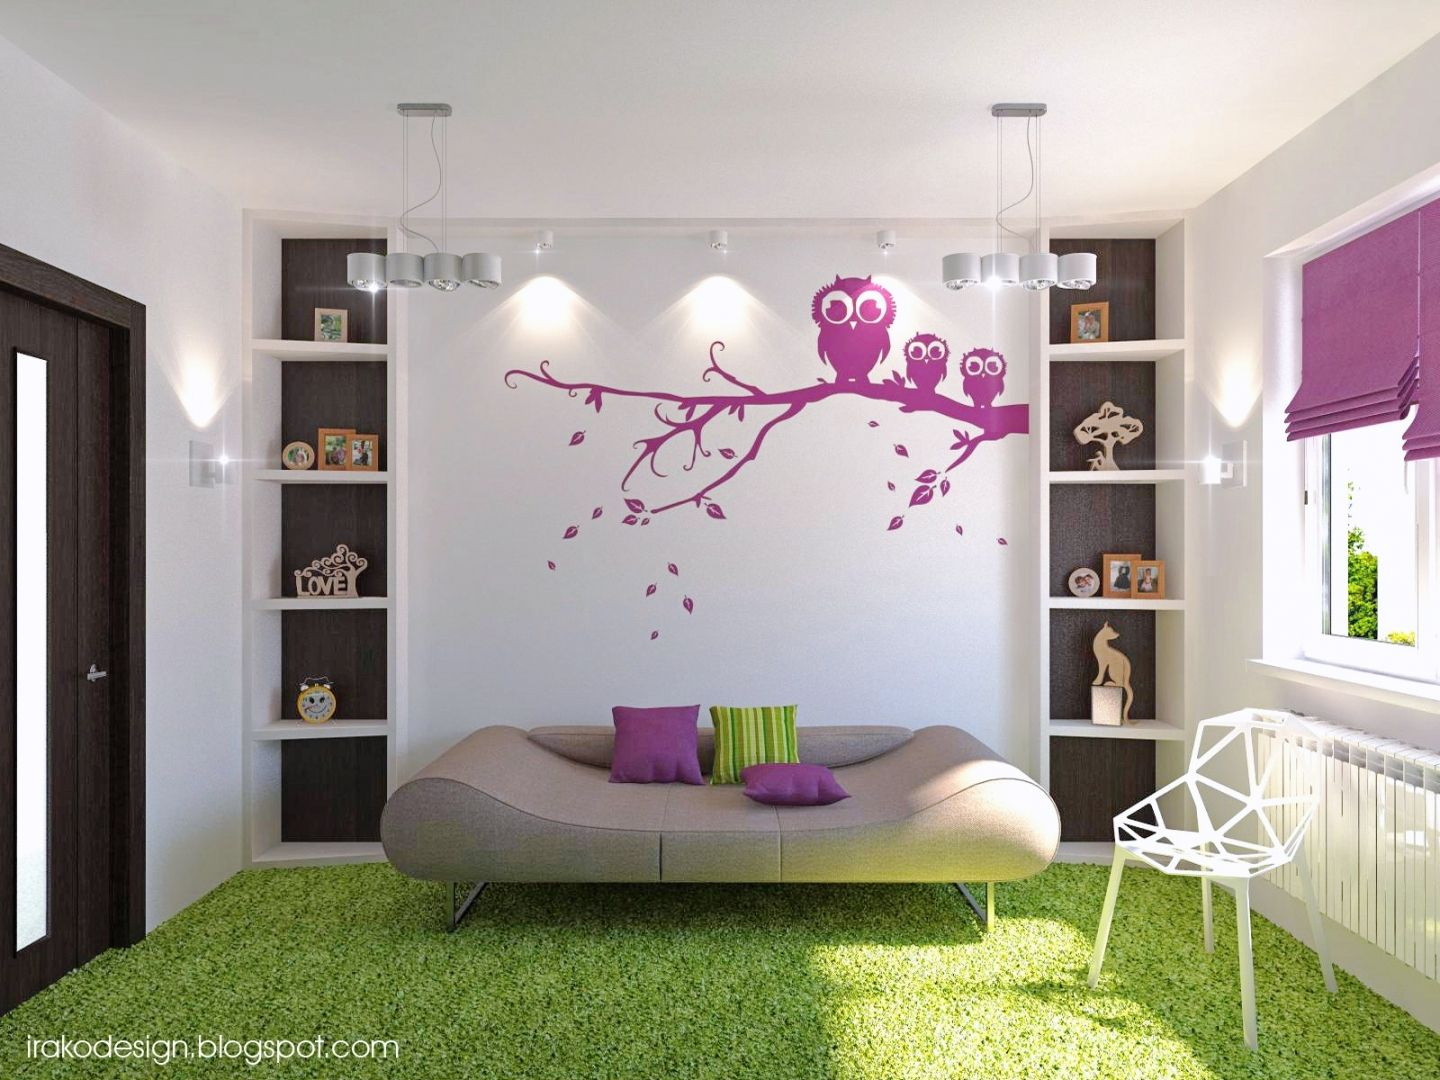 Girls Room Design Ideas Part - 17: Teens Bedroom Comely Sweet Teenage Girls Rooms Design Ideas Amusing Modern  With White Floor And Green